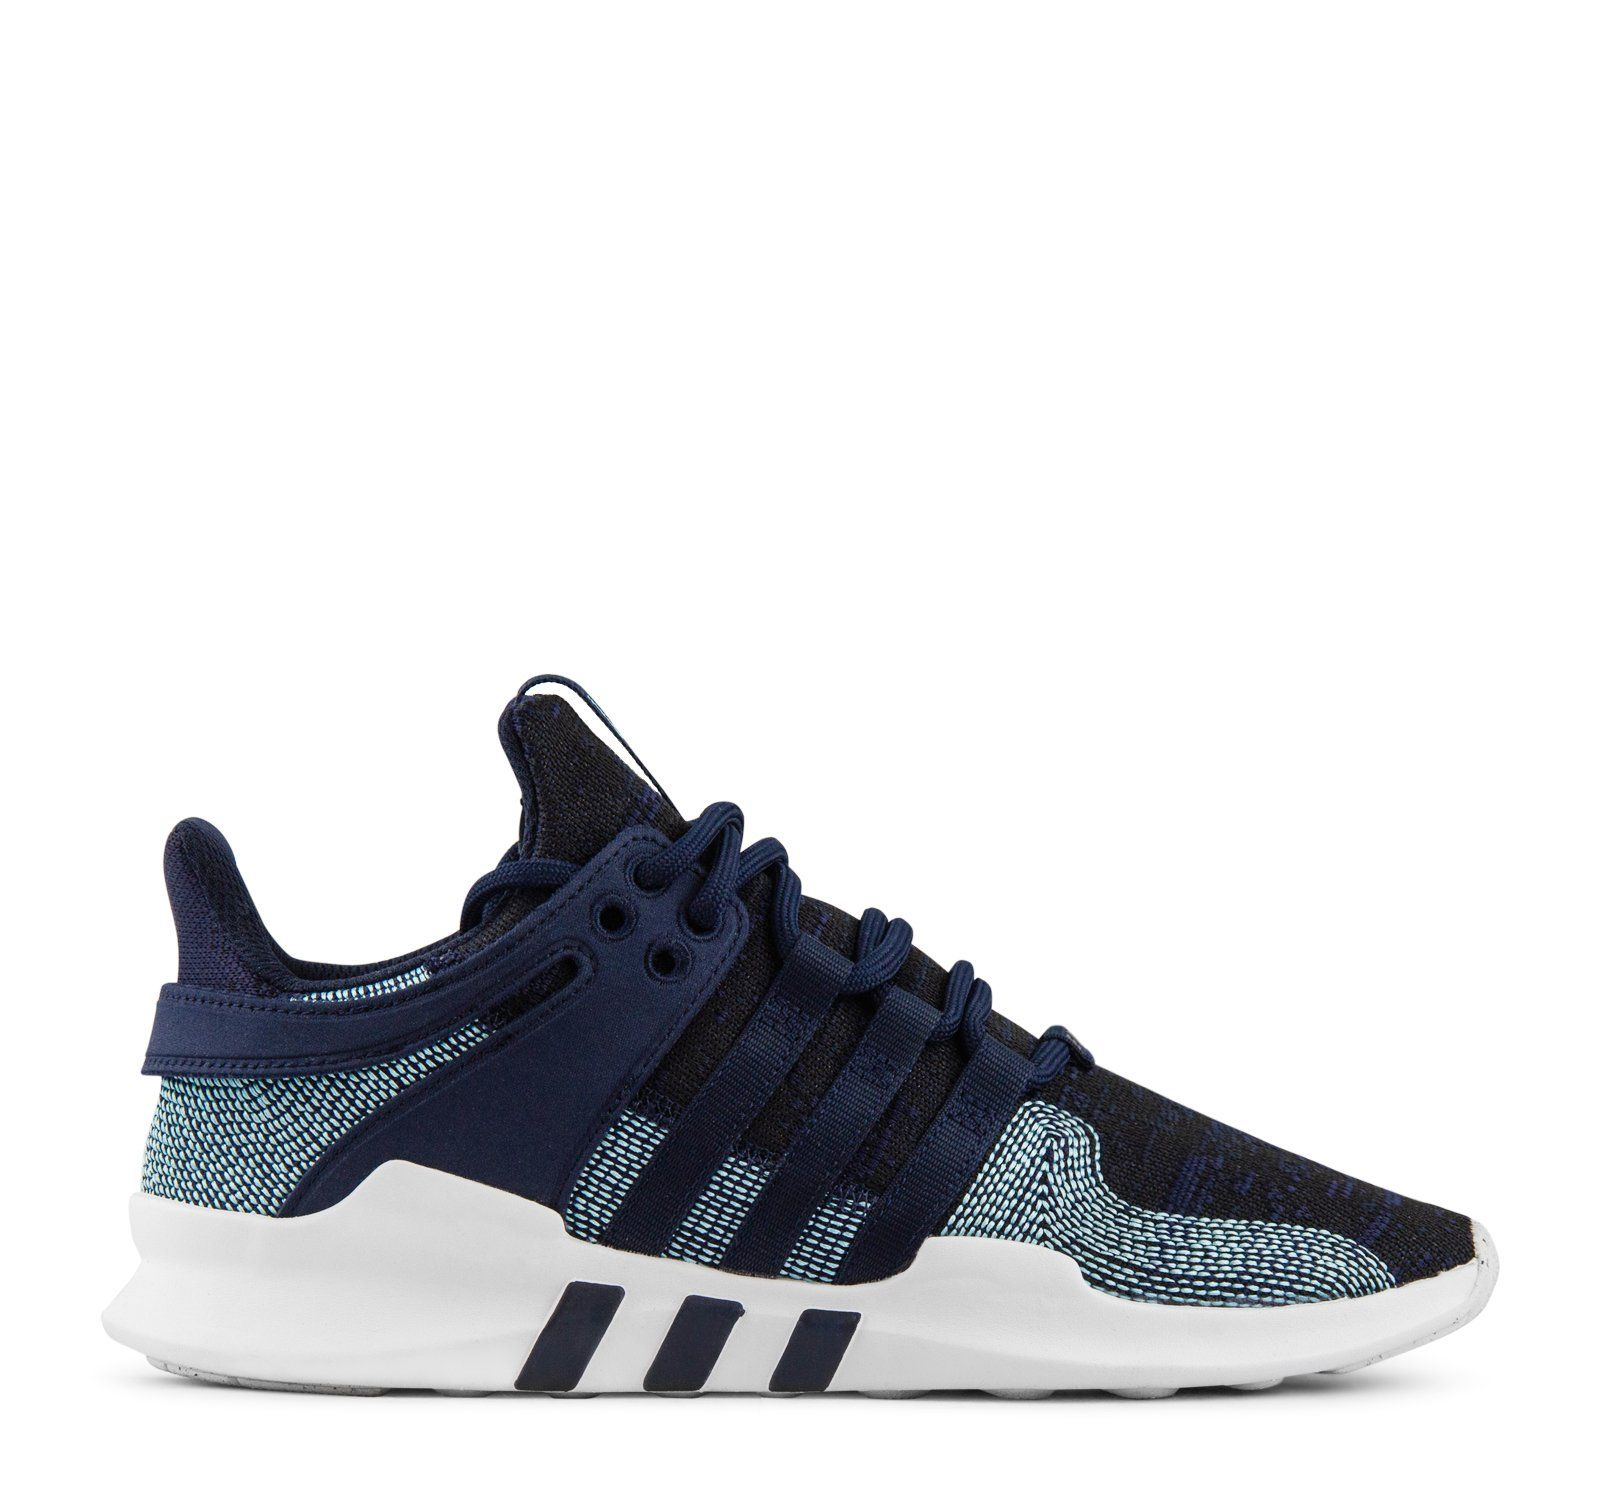 low cost 16387 01c49 Adidas EQT Support ADV Parley CQ0299 - InkBlue